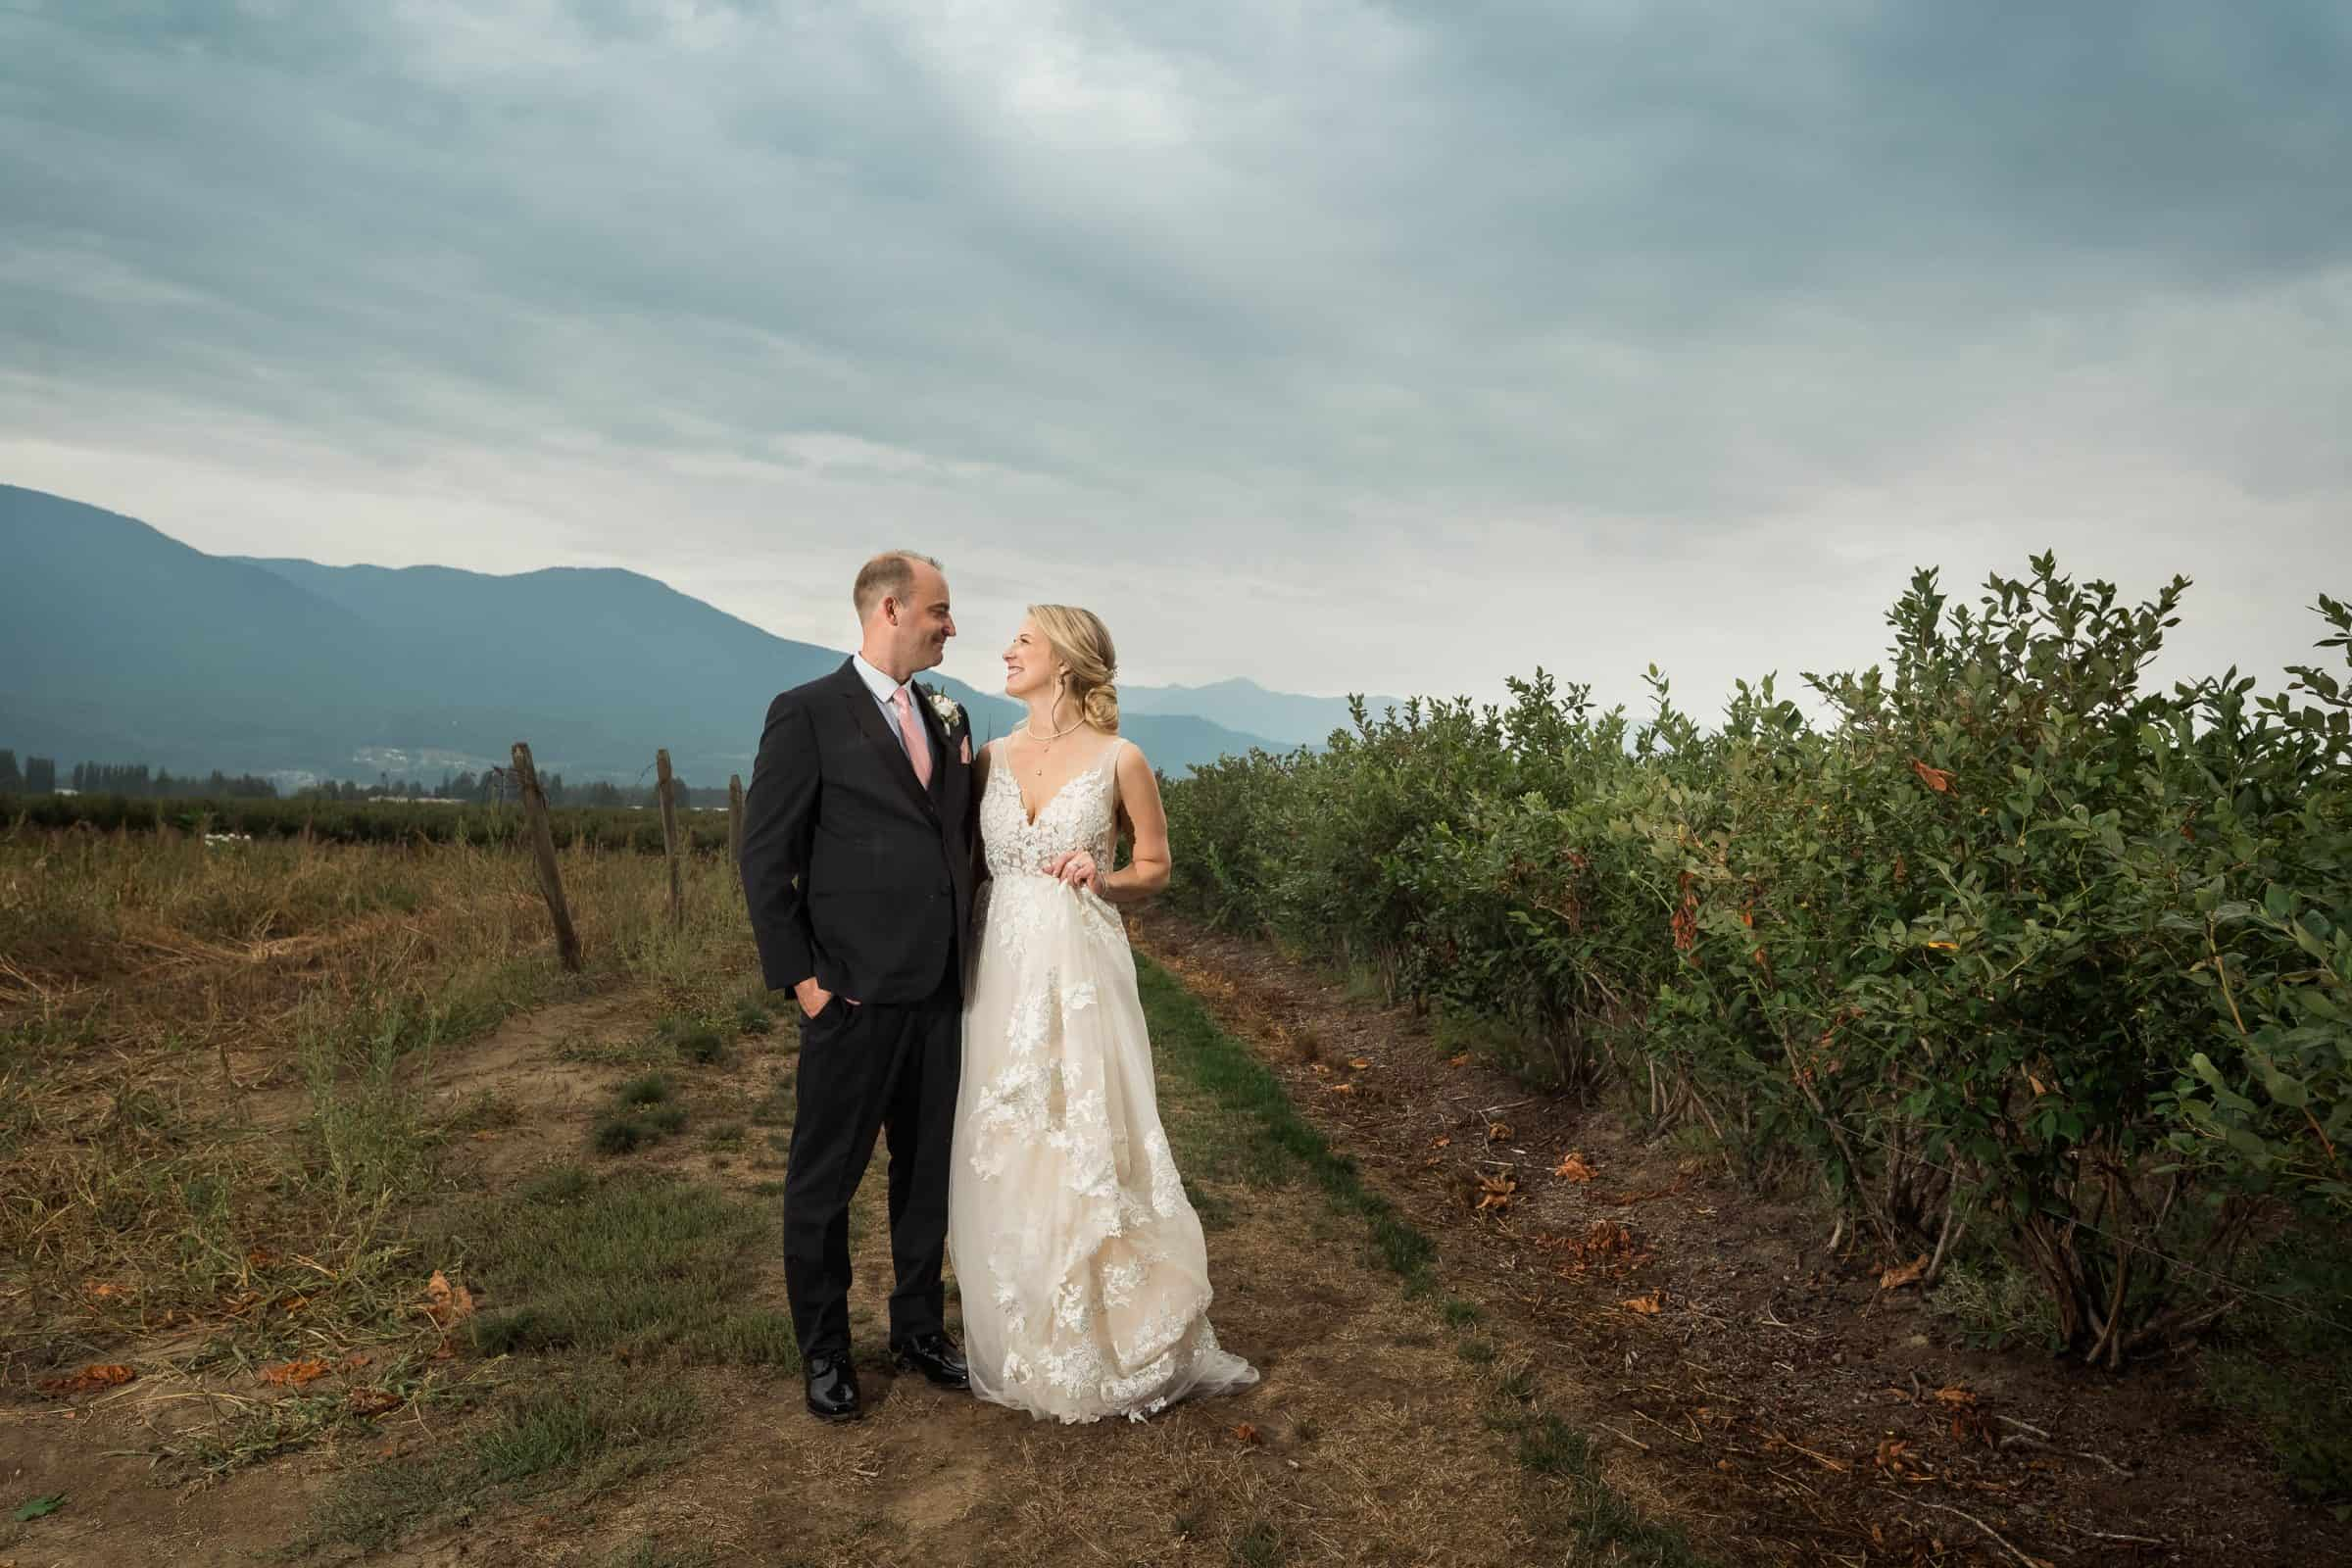 bride and groom looking at each other in field with mountains behind